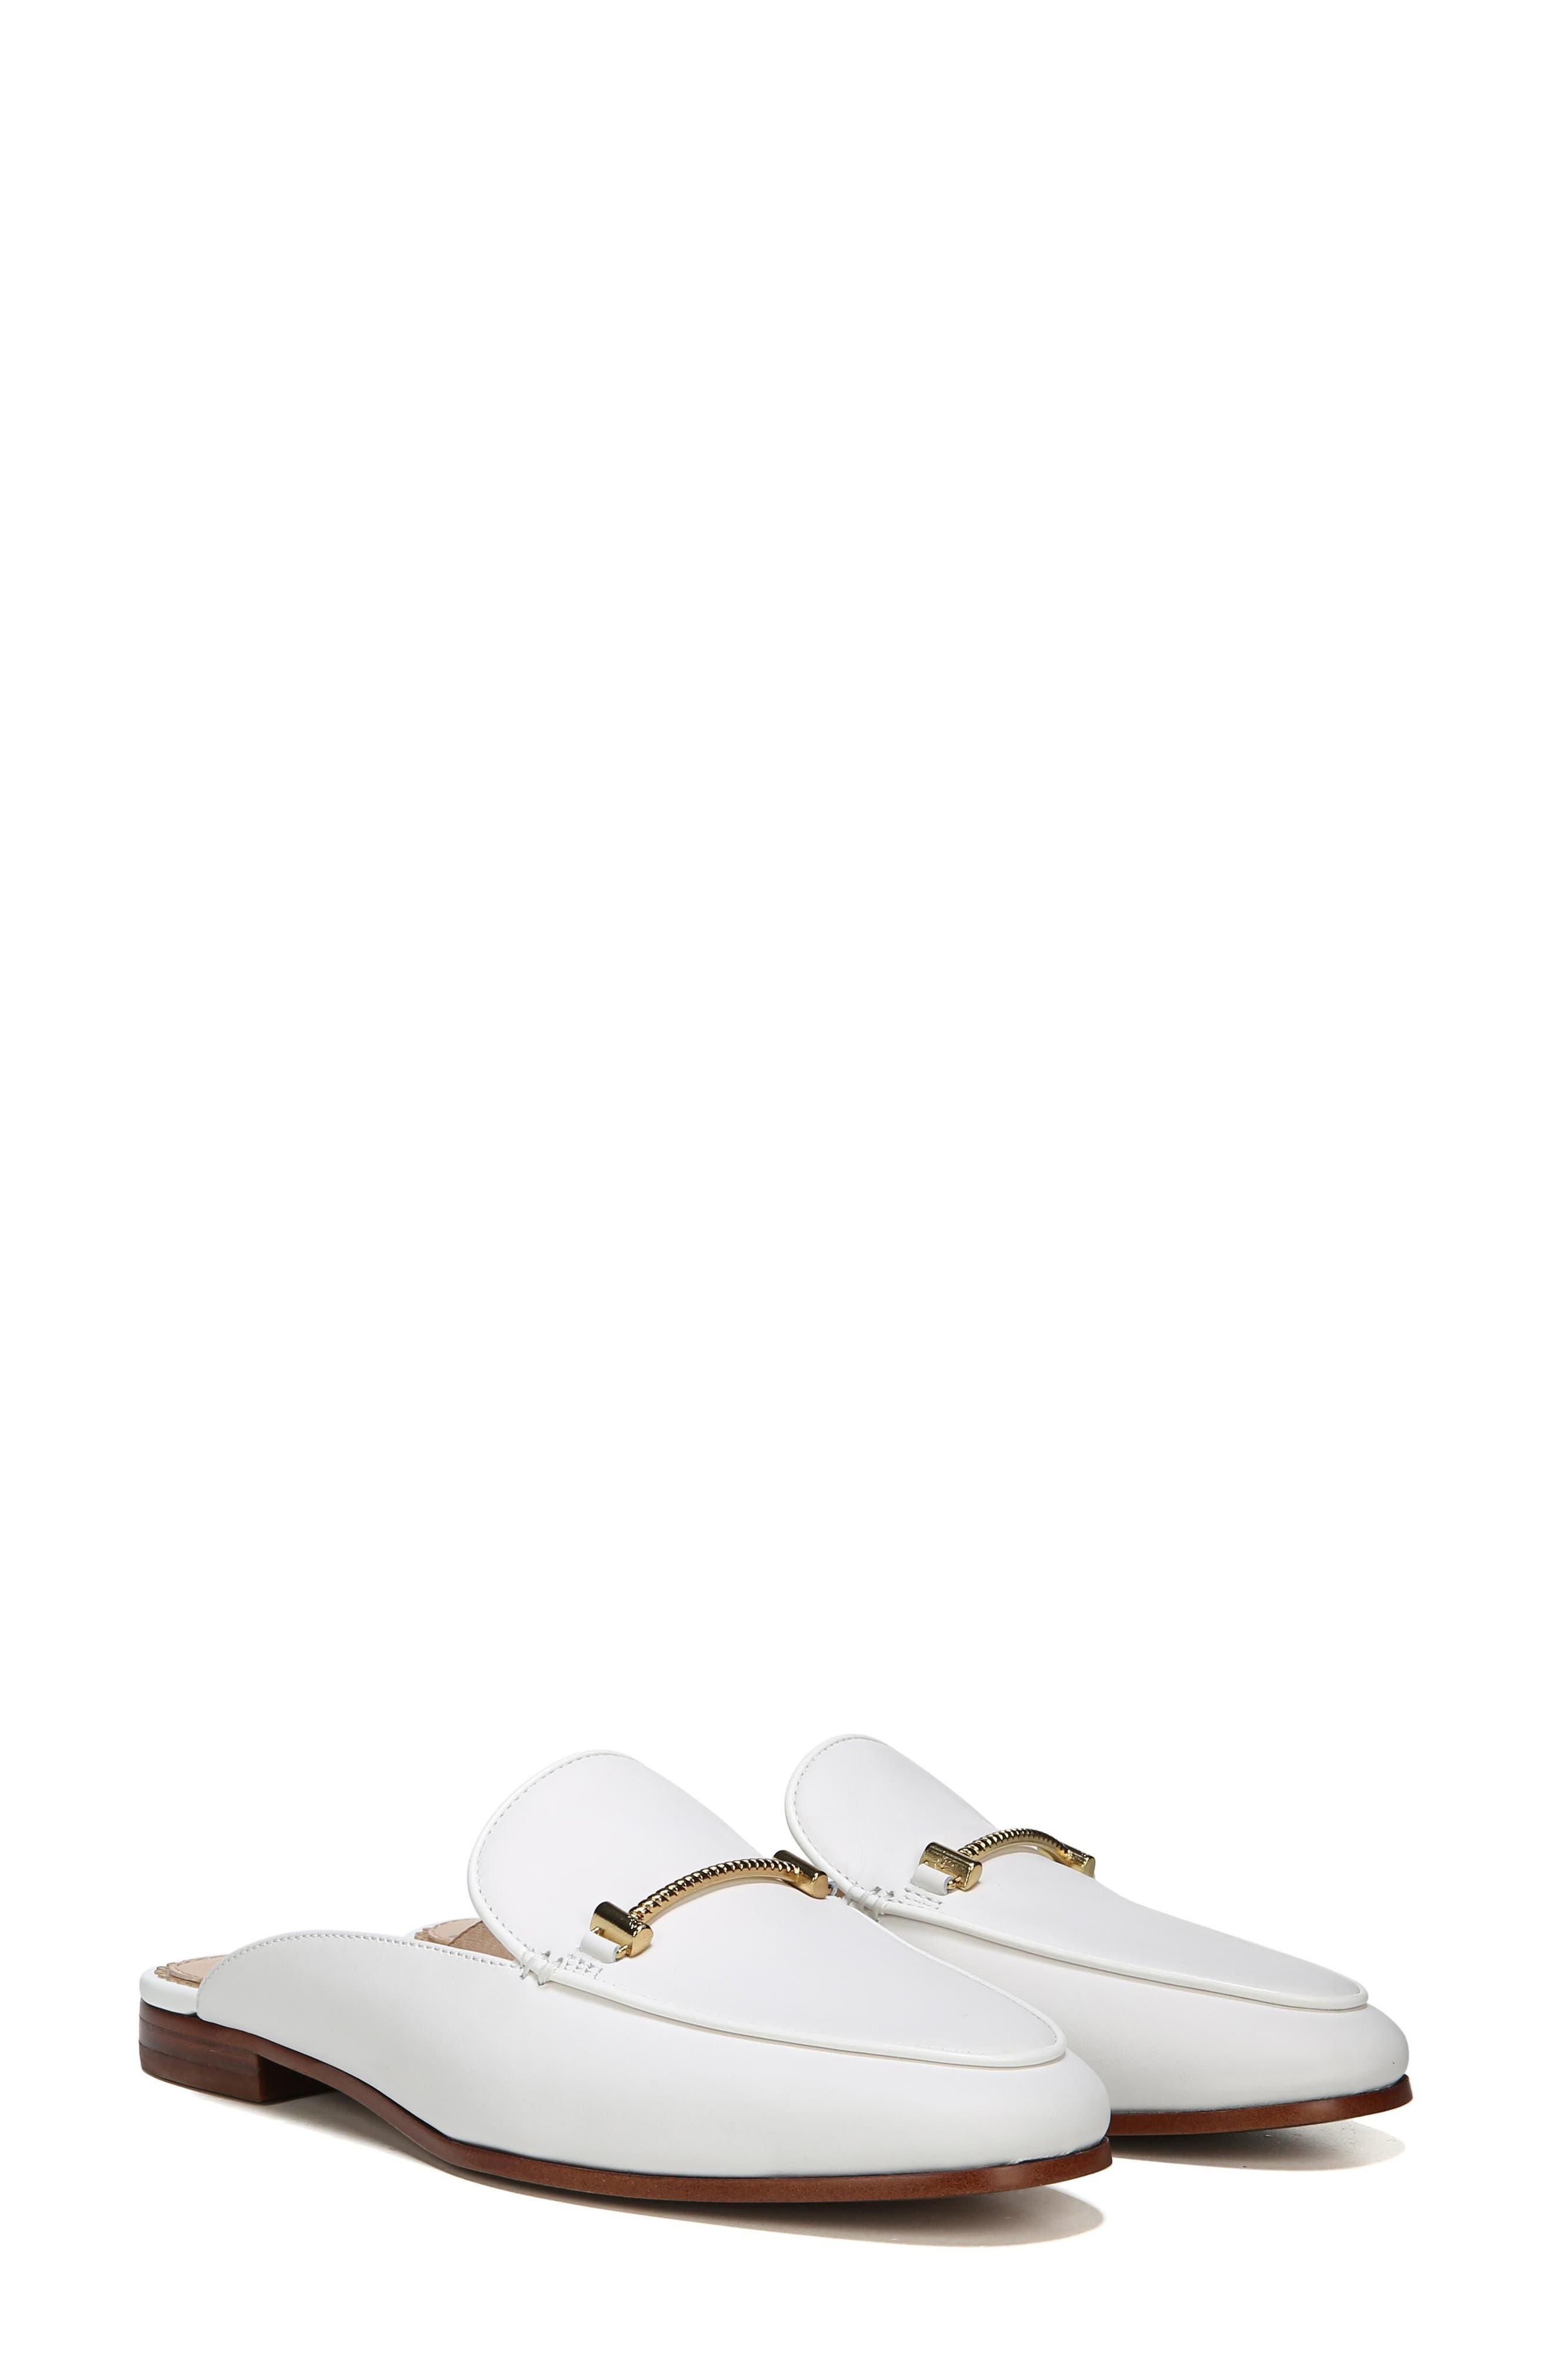 Laurna Mule,                             Main thumbnail 1, color,                             BRIGHT WHITE LEATHER